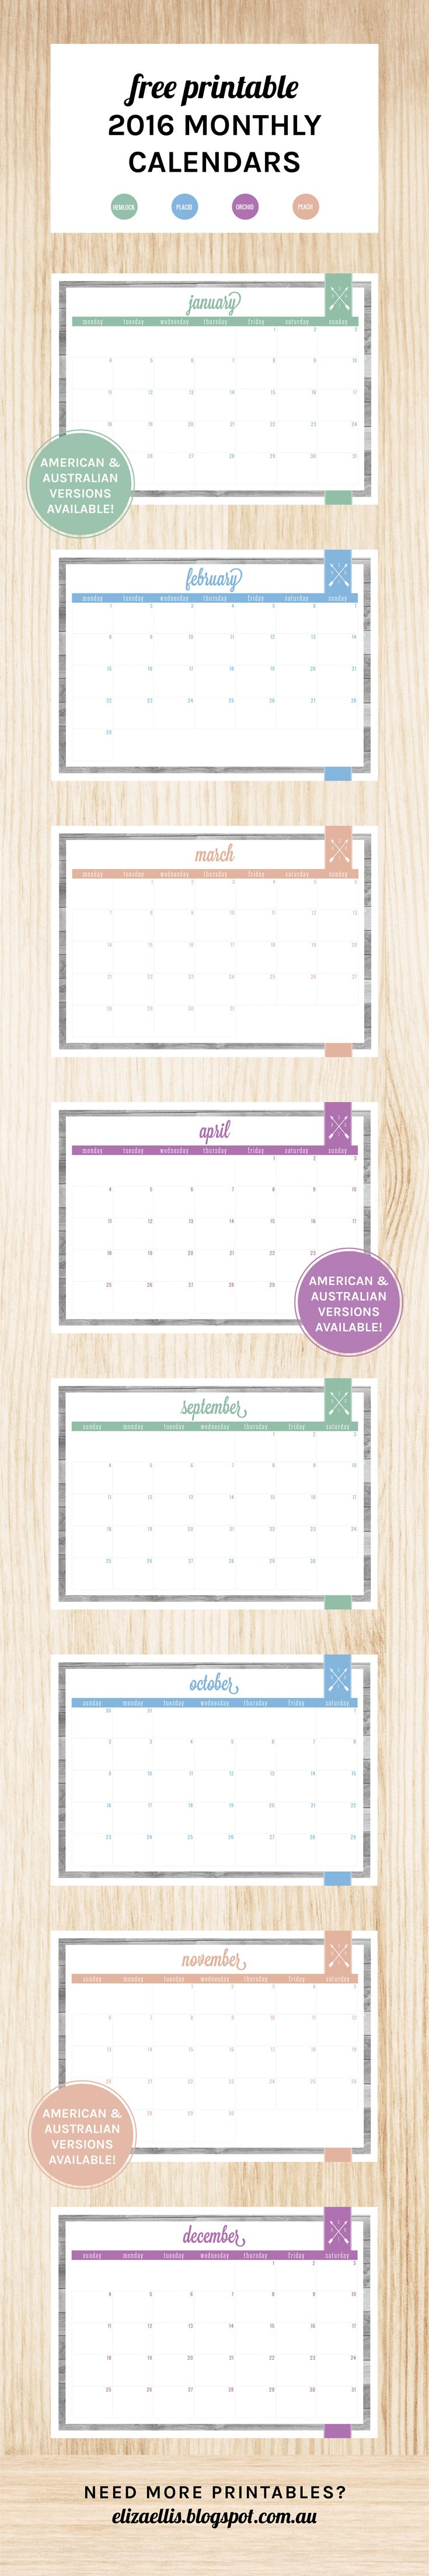 Free Printable 2016 Monthly Calendars by Eliza Ellis. Available in both Australian/UK and American versions, as well as in 4 colors. Check out my blog for loads more planners, diaries, calendars and organizers!